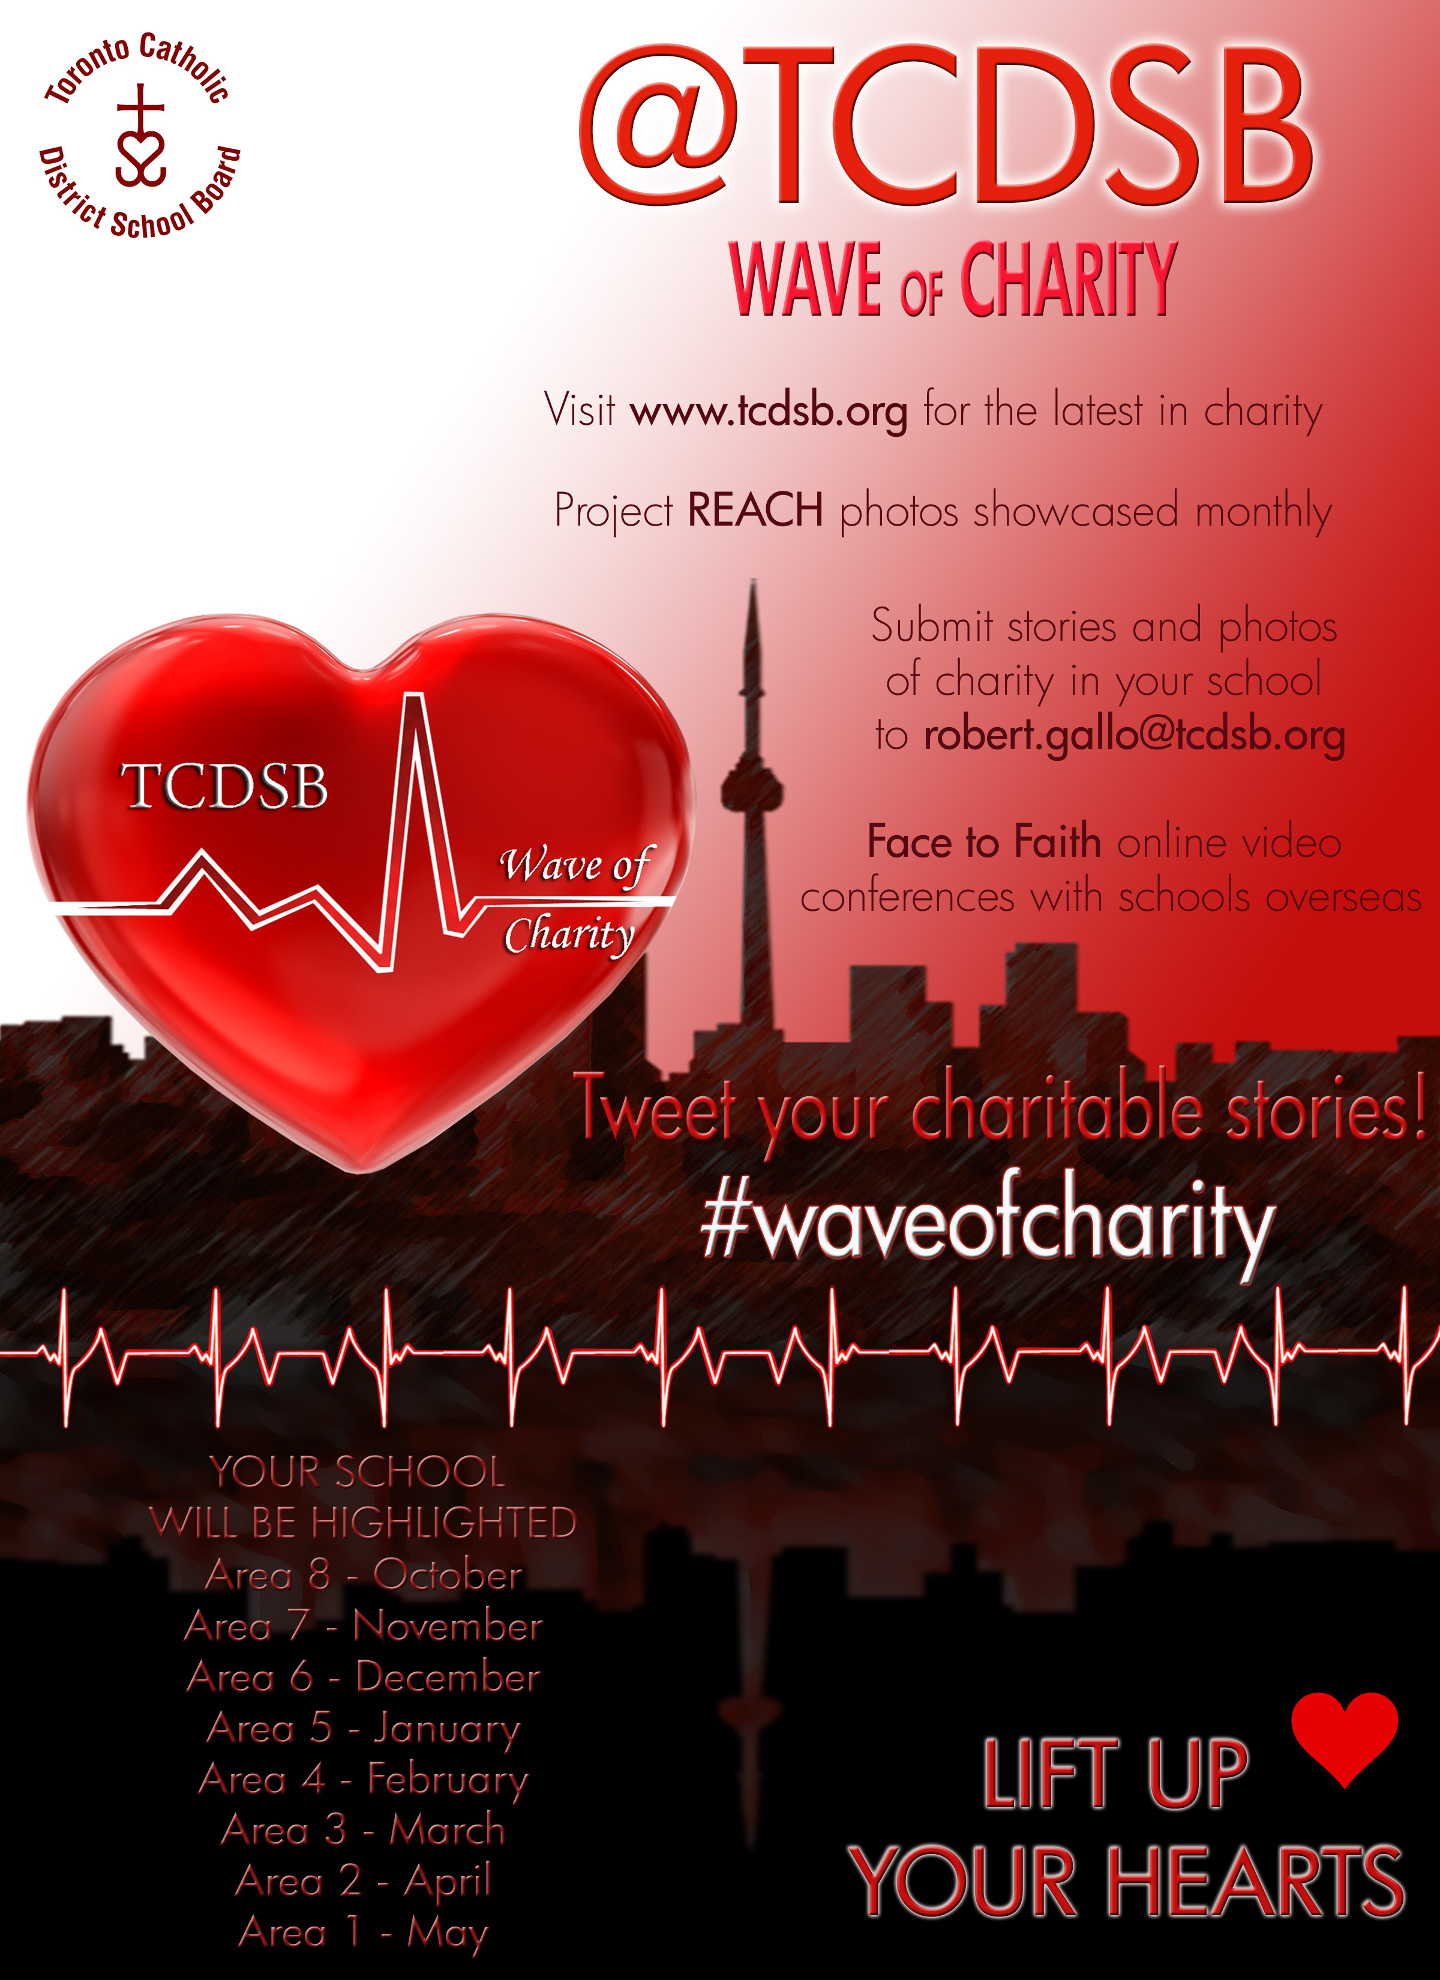 wave of charity poster.JPG